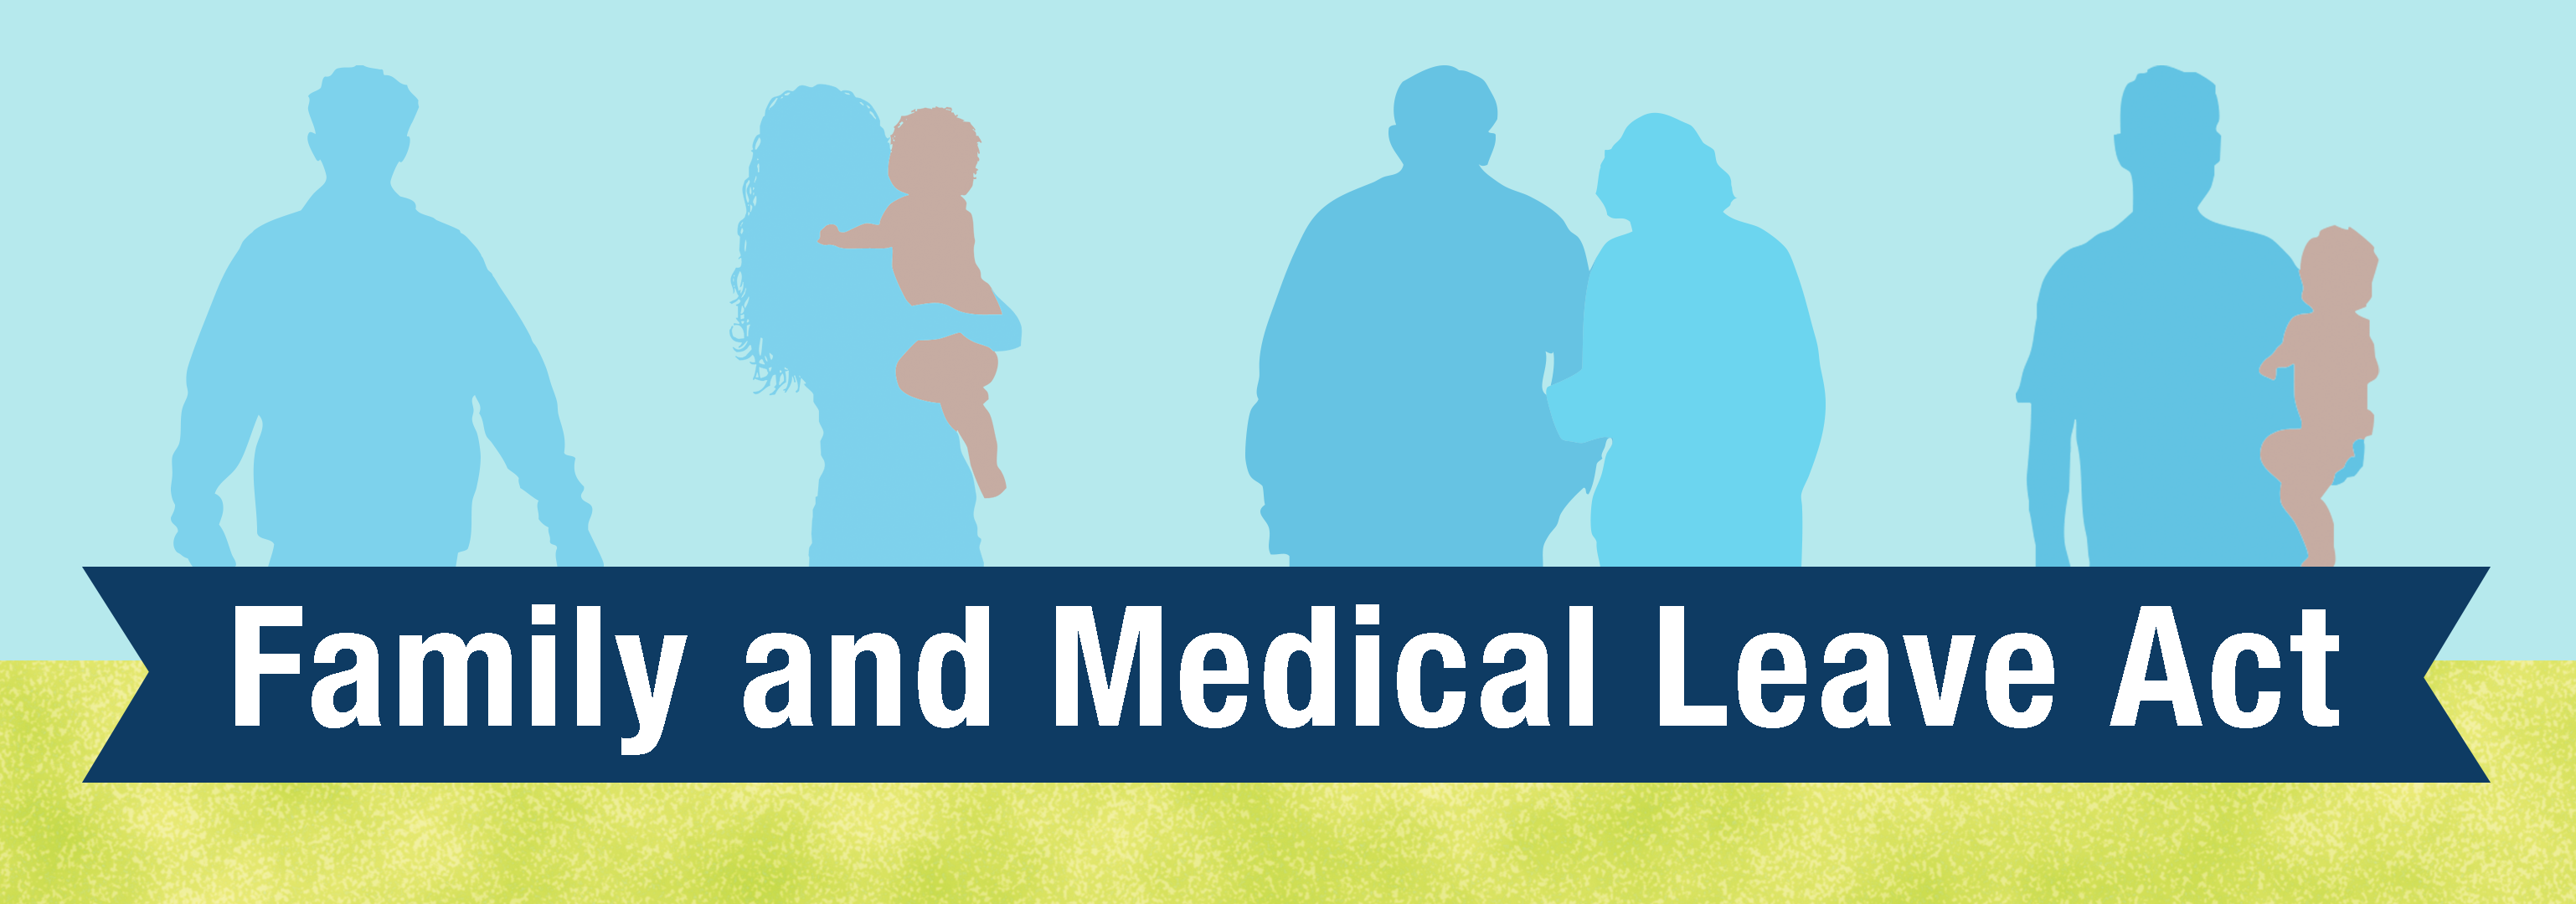 Family and Medical Leave Act. FMLA